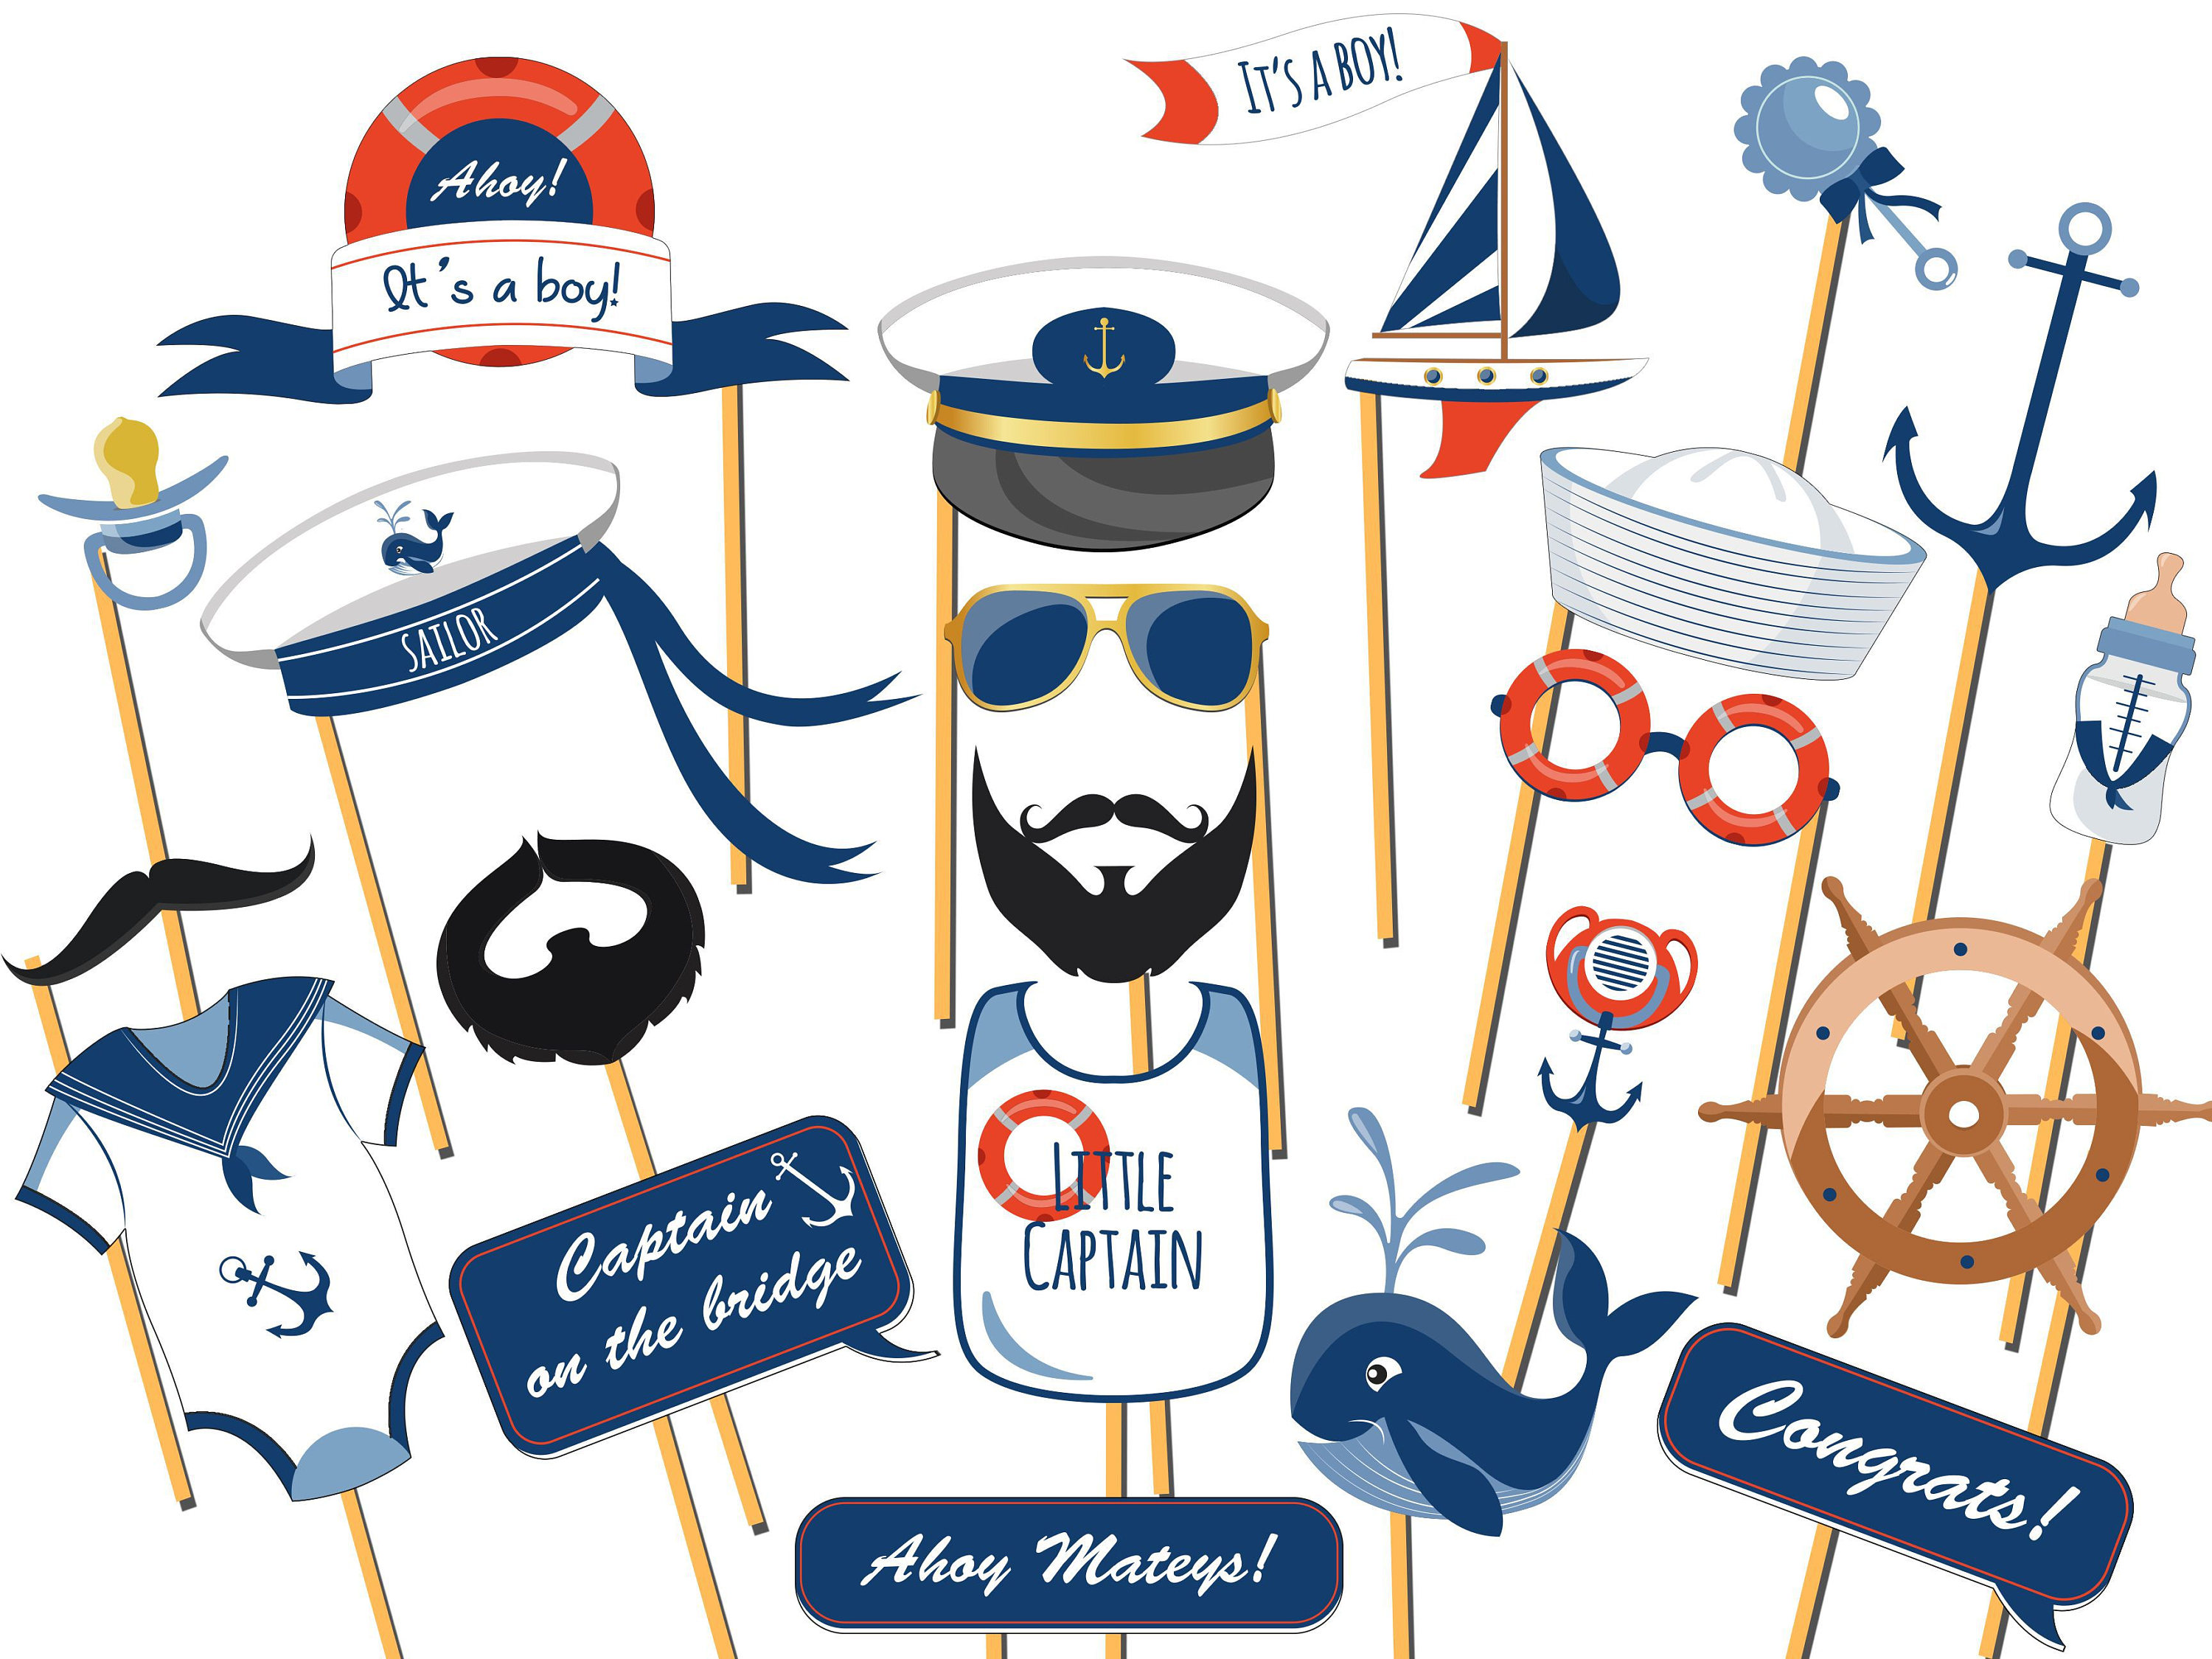 cce0b50c92ce9 Personalized Nautical baby shower photo booth prop, Ahoy It's a Boy ...